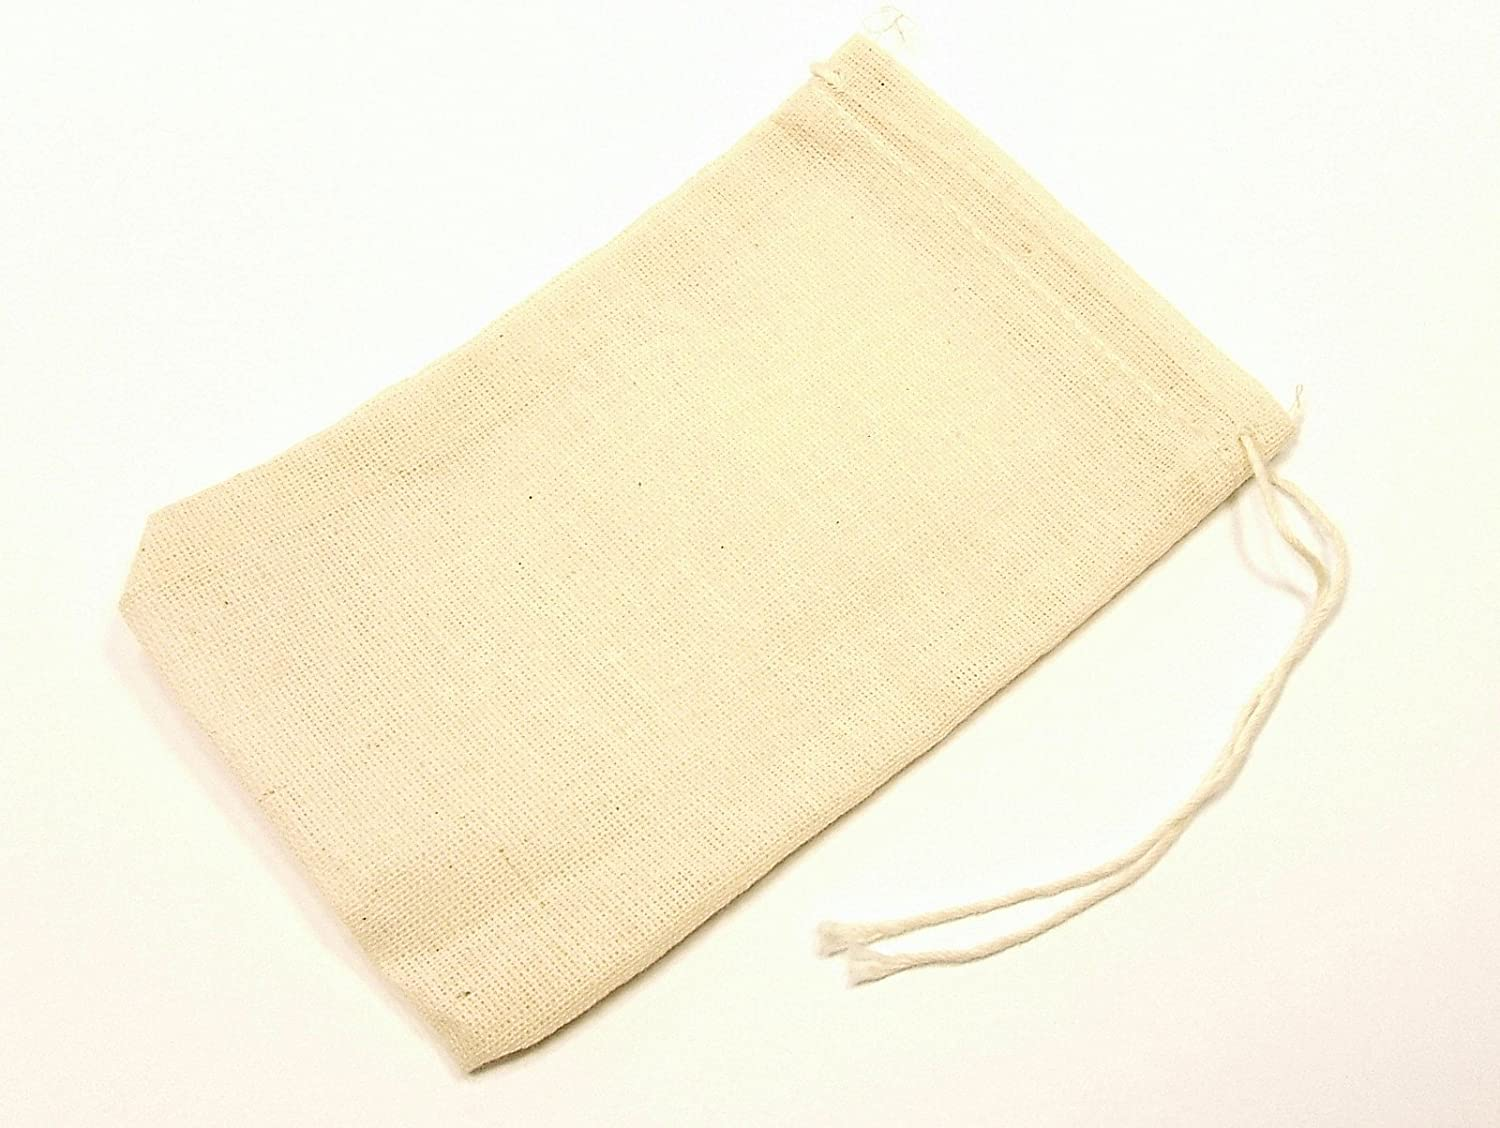 herbs 3 Pack of Culinary Muslin Bags 6x8 inches approx. tea teabag